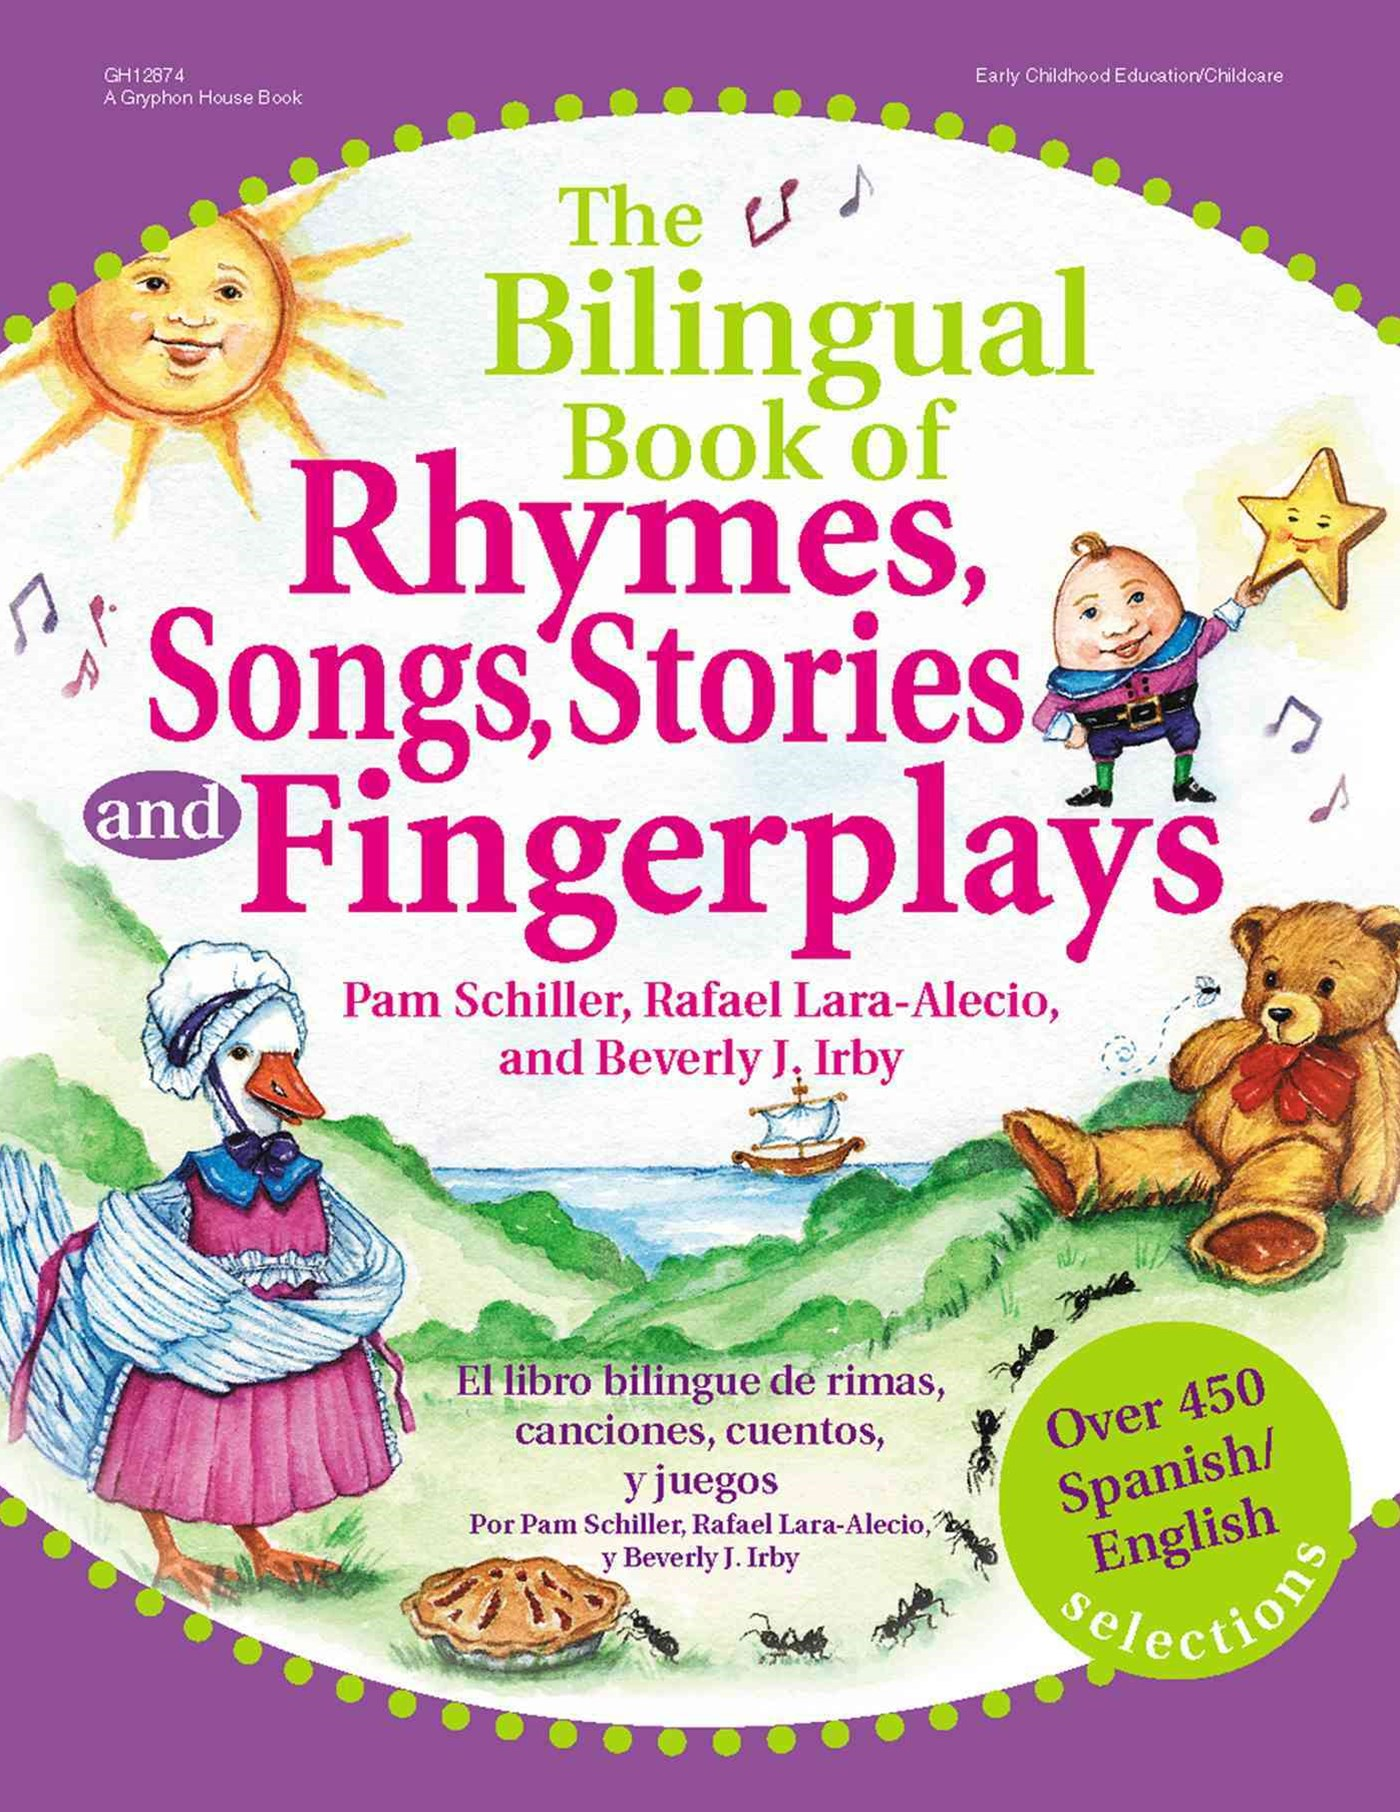 Bilingual Book of Rhymes, Songs, Stories, and Fingerplays